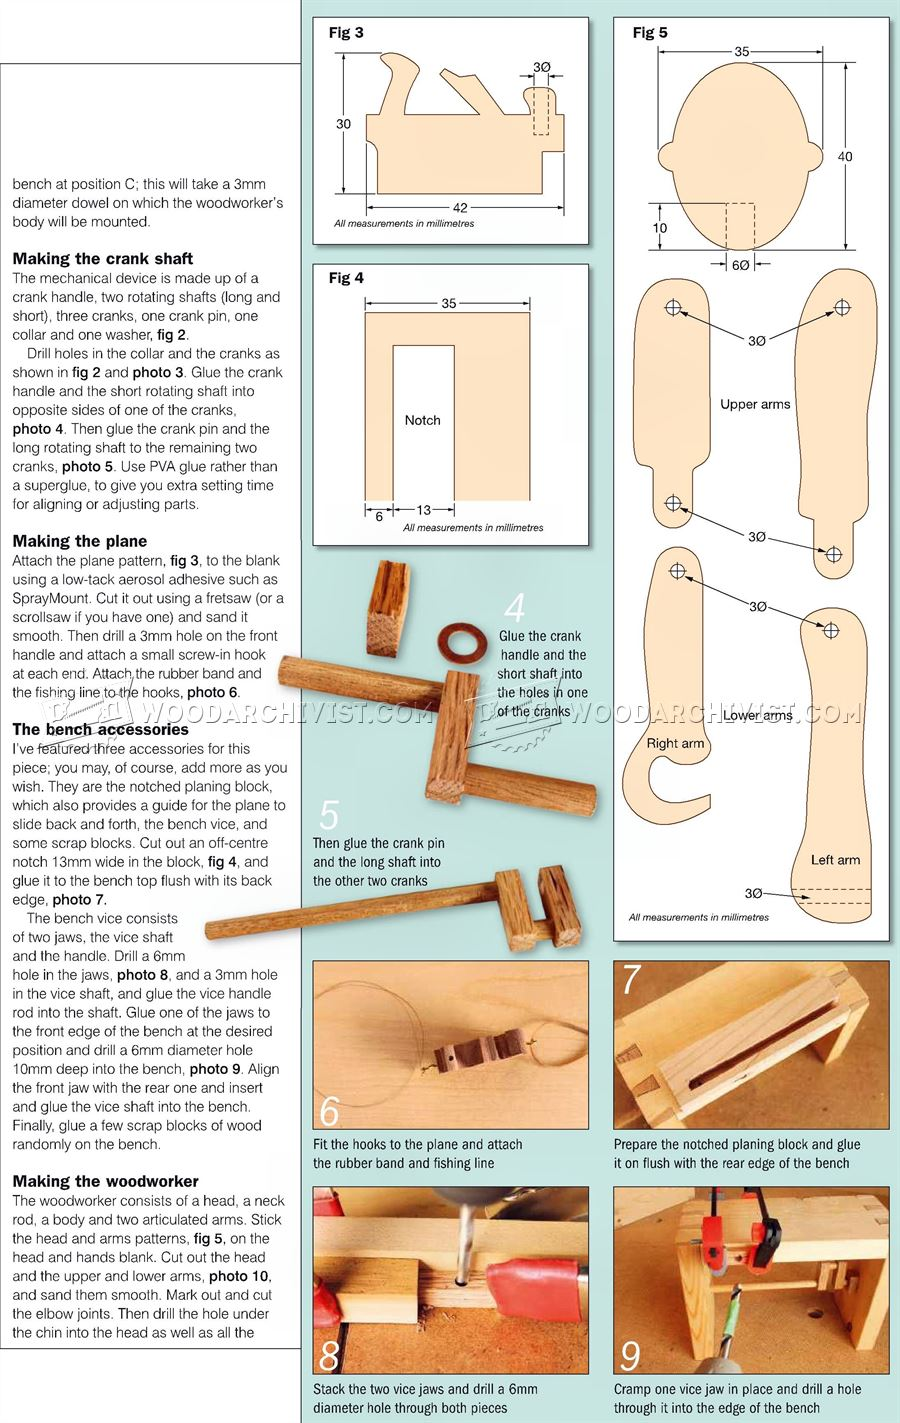 Woodworker - Automata Toy Plans